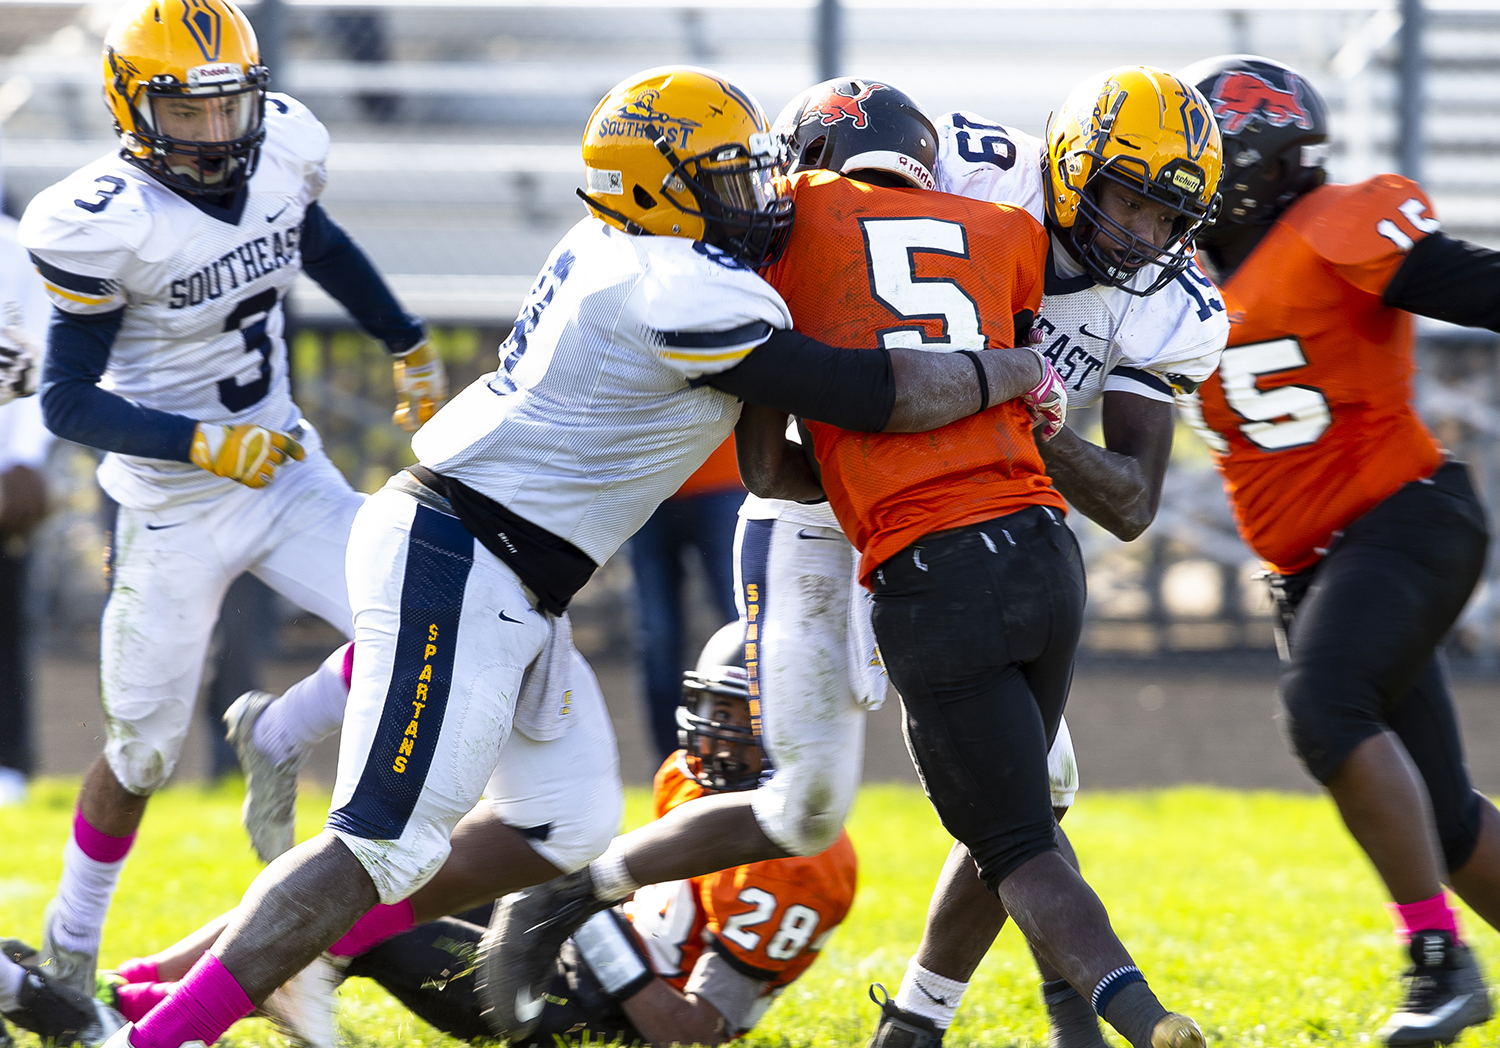 Southeast defenders Ben Gippleh (8), left, and Devin Blue-Robinson (19) wrap up Lanphier's Narkel Leflore at Memorial Stadium Saturday, Oct. 20, 2018  in Springfield, Ill. [Rich Saal/The State Journal-Register]